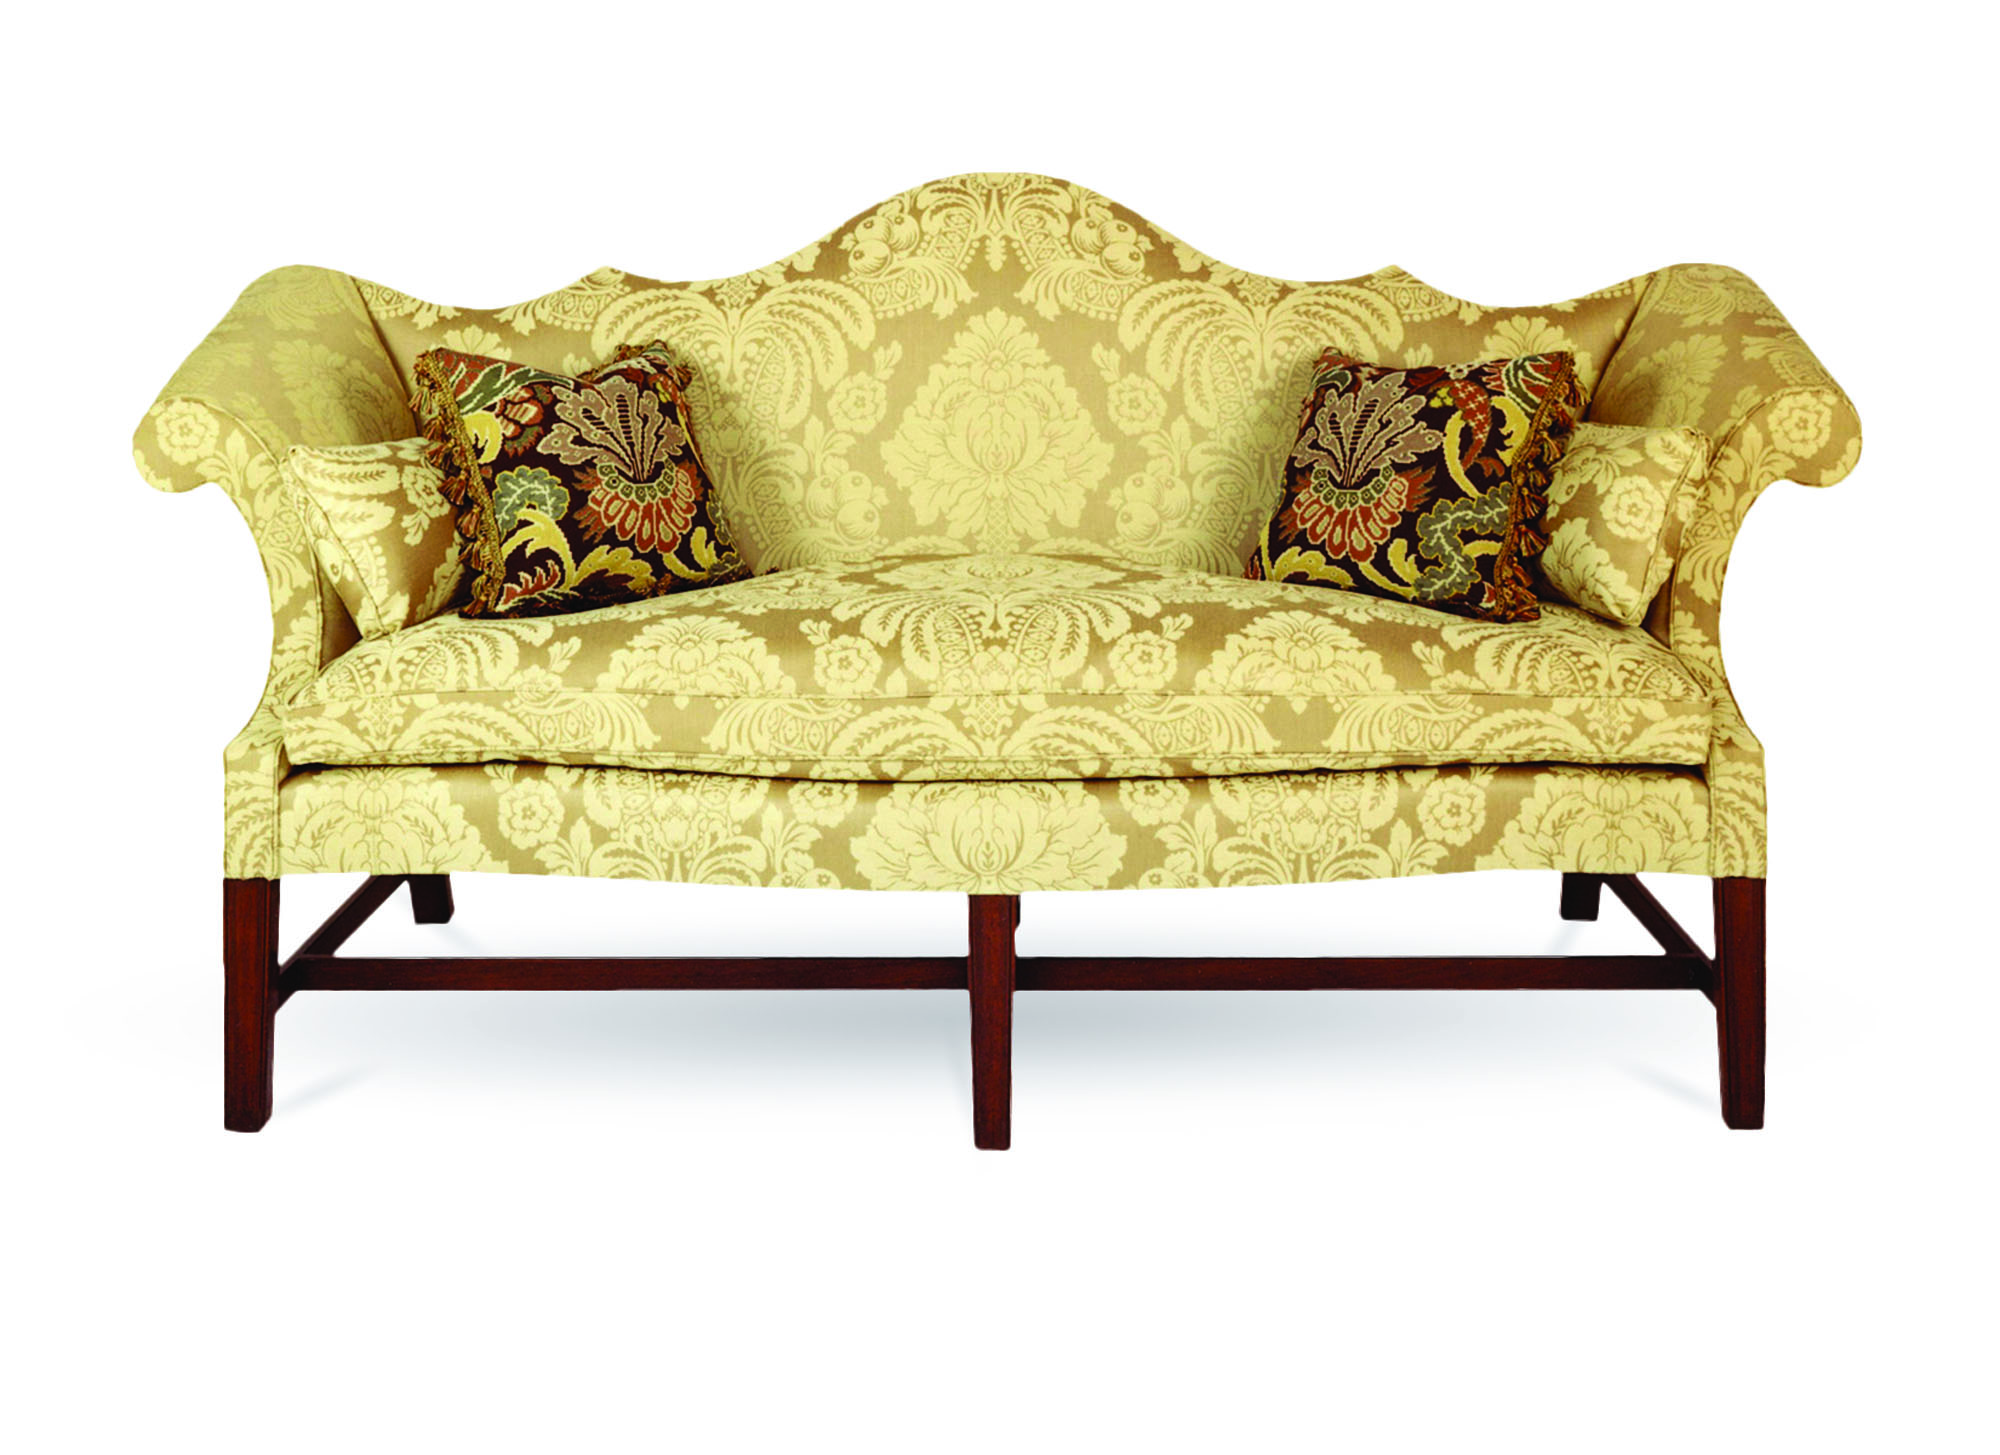 The 'DuPont' sofa from Andersen & Stauffer is an exact reproduction of one made in Philadelphia in the third quarter of the 18th century.